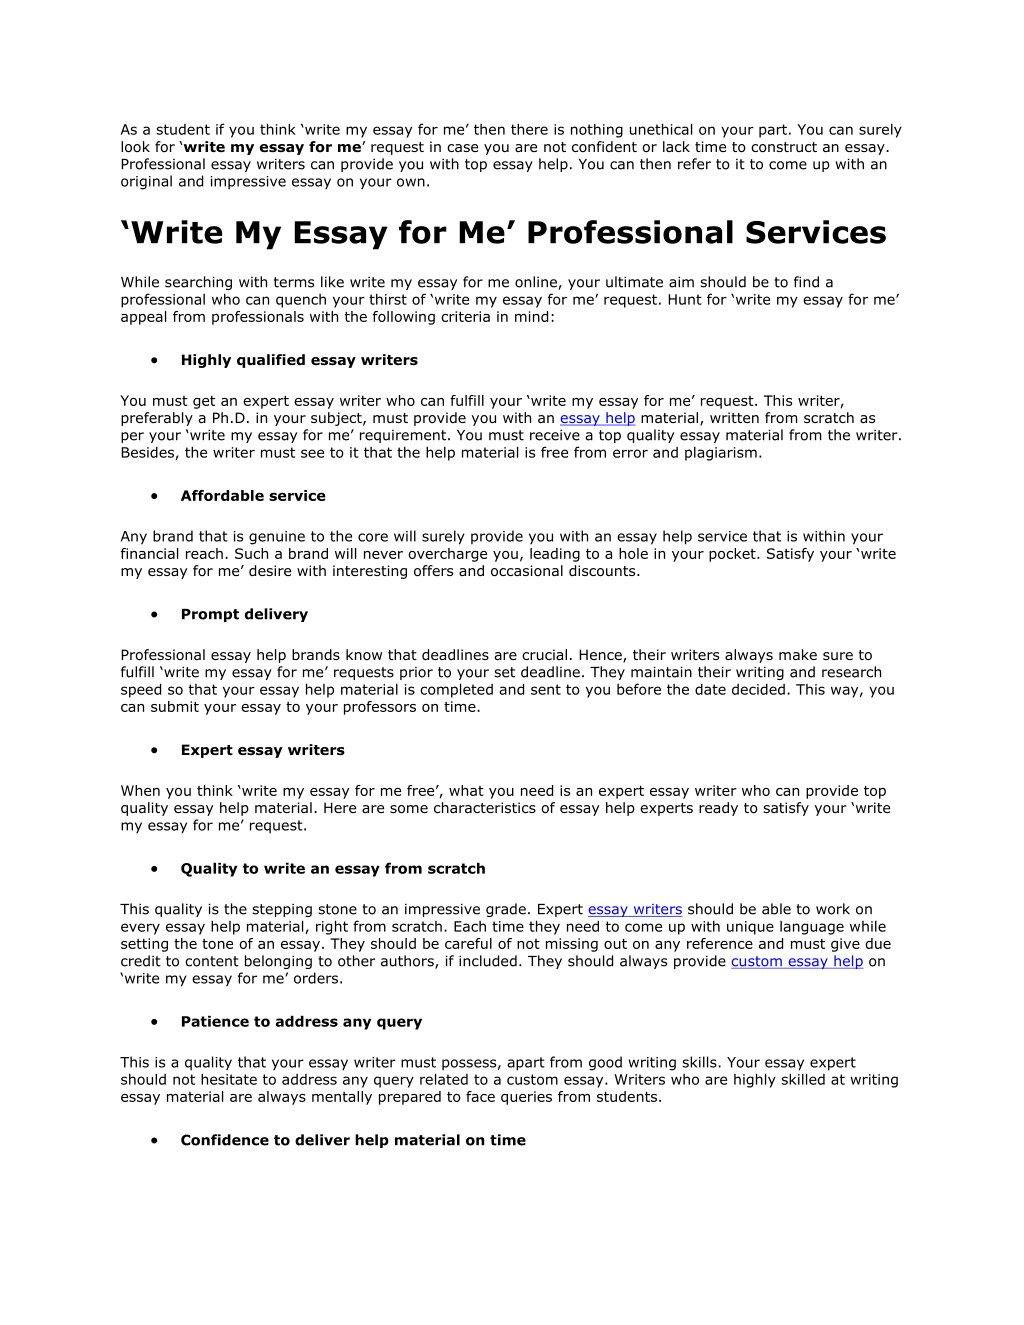 006 Essay Example Write For Me As Student If You Think My Amazing Custom Cheap Free Full